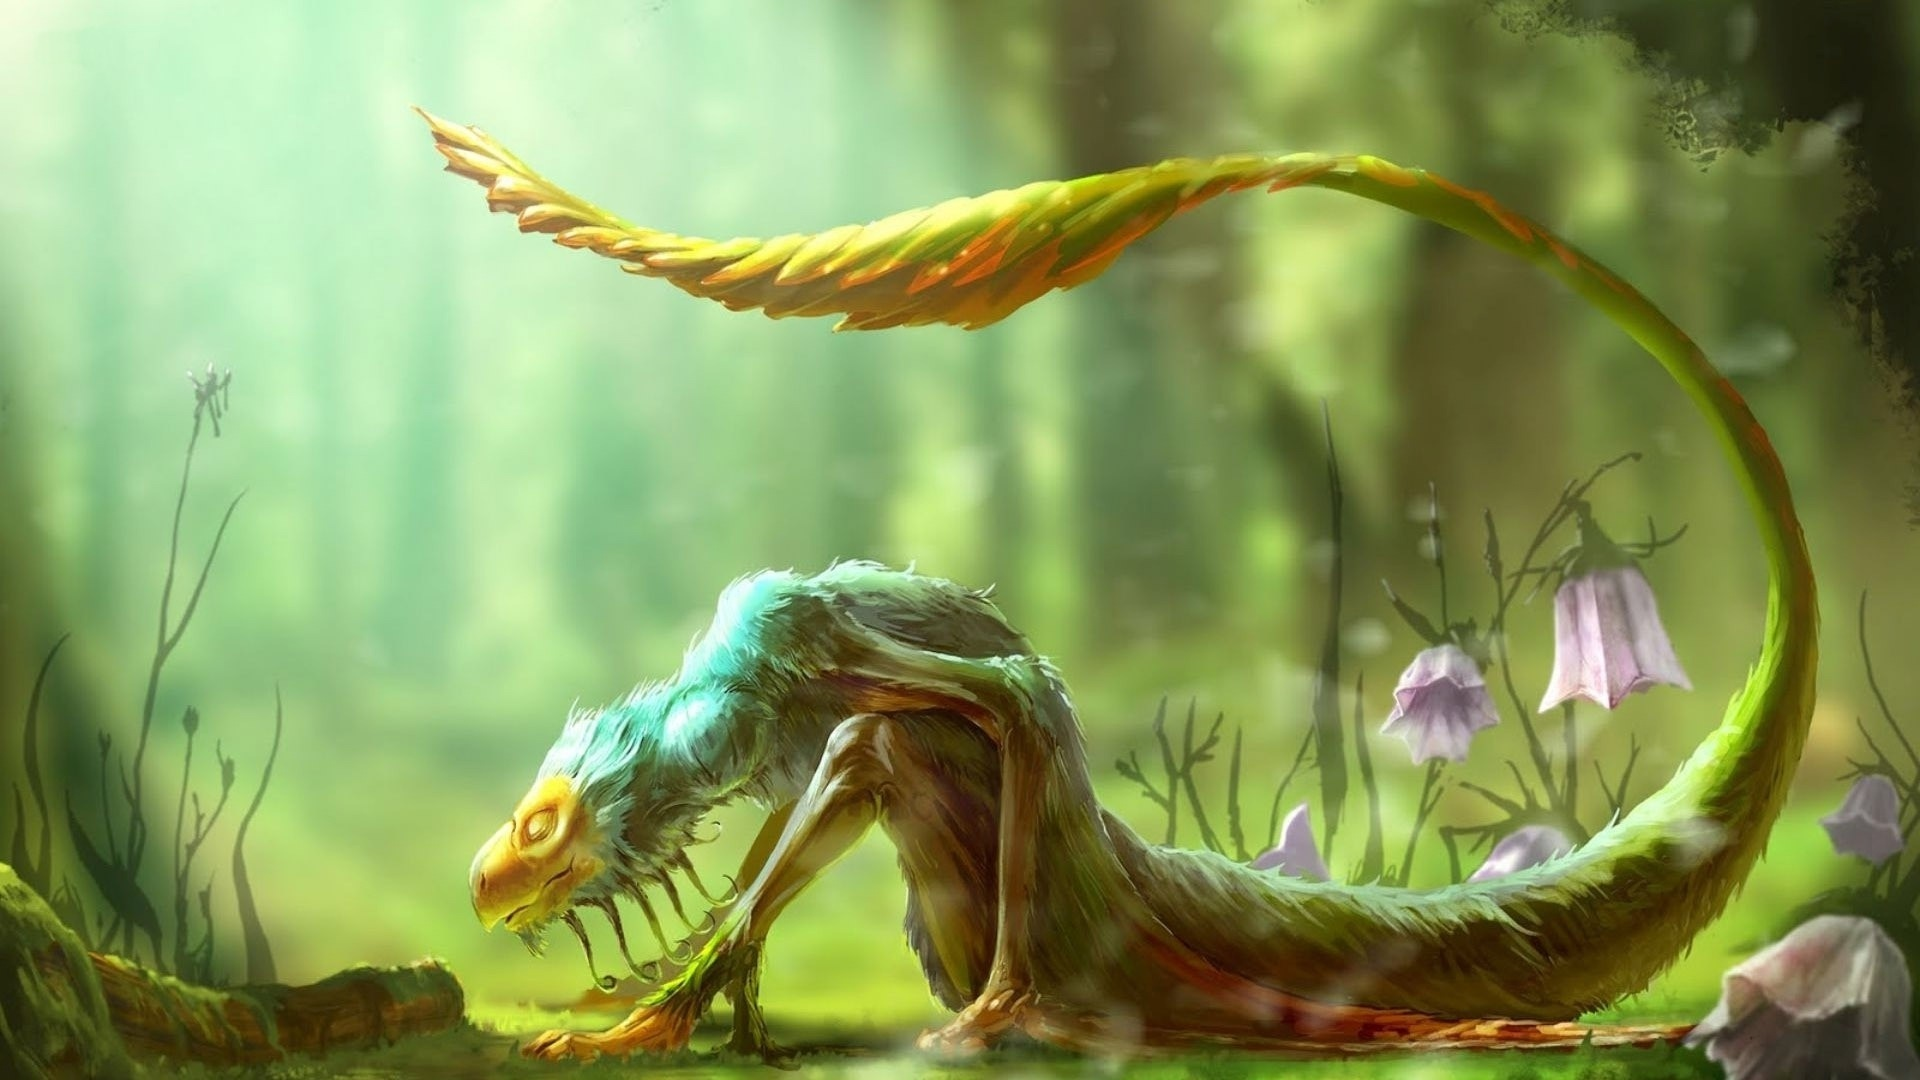 Mythical Creatures Background